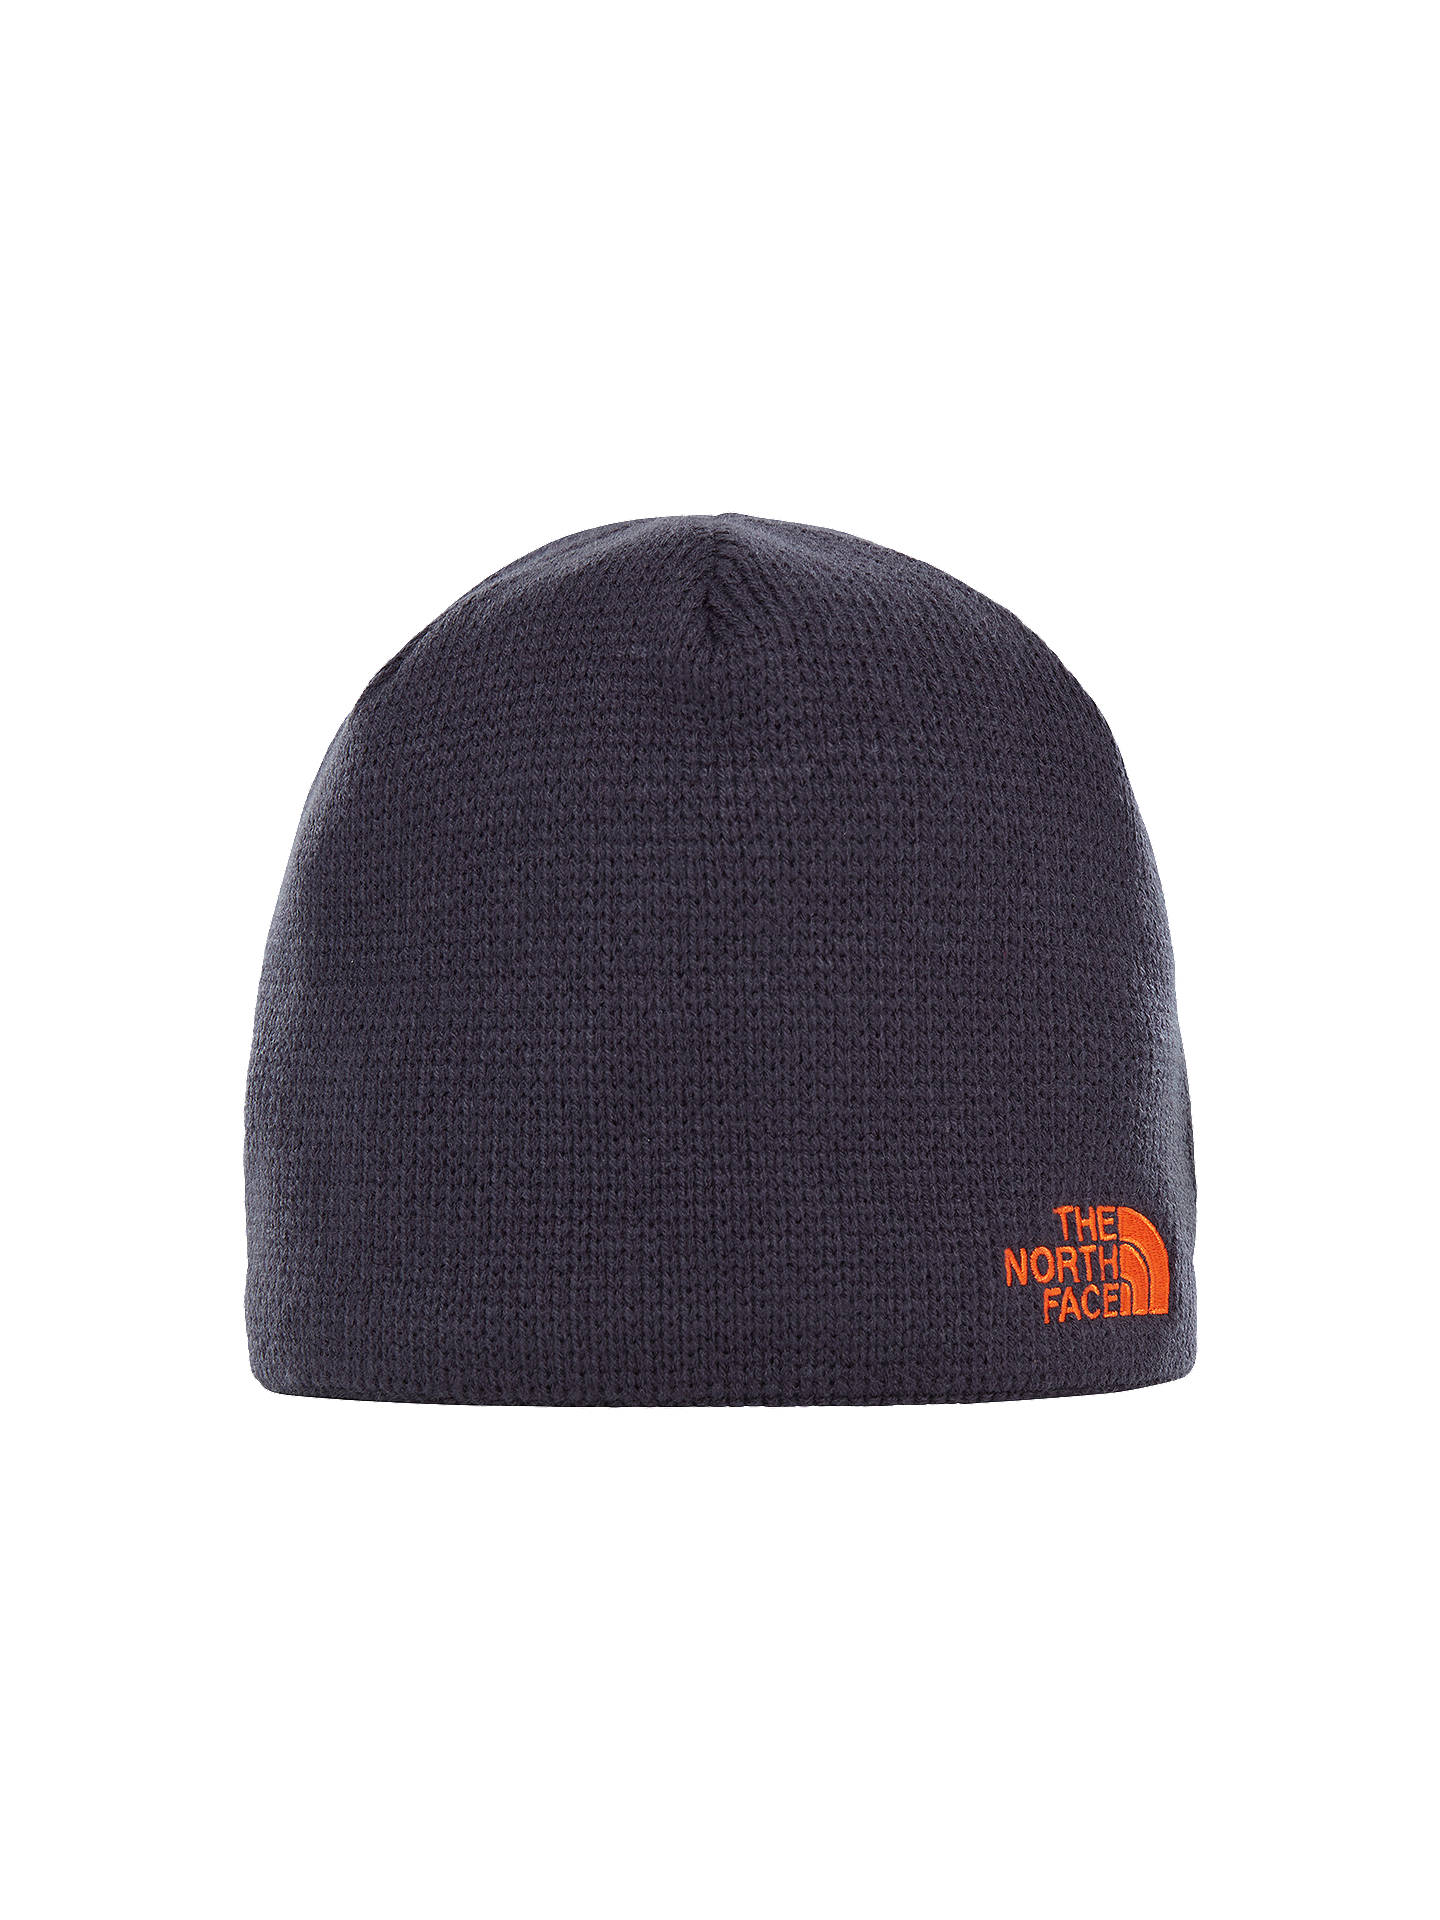 Buy The North Face Bones Beanie Hat, One Size, Navy/Persian Orange Online at johnlewis.com